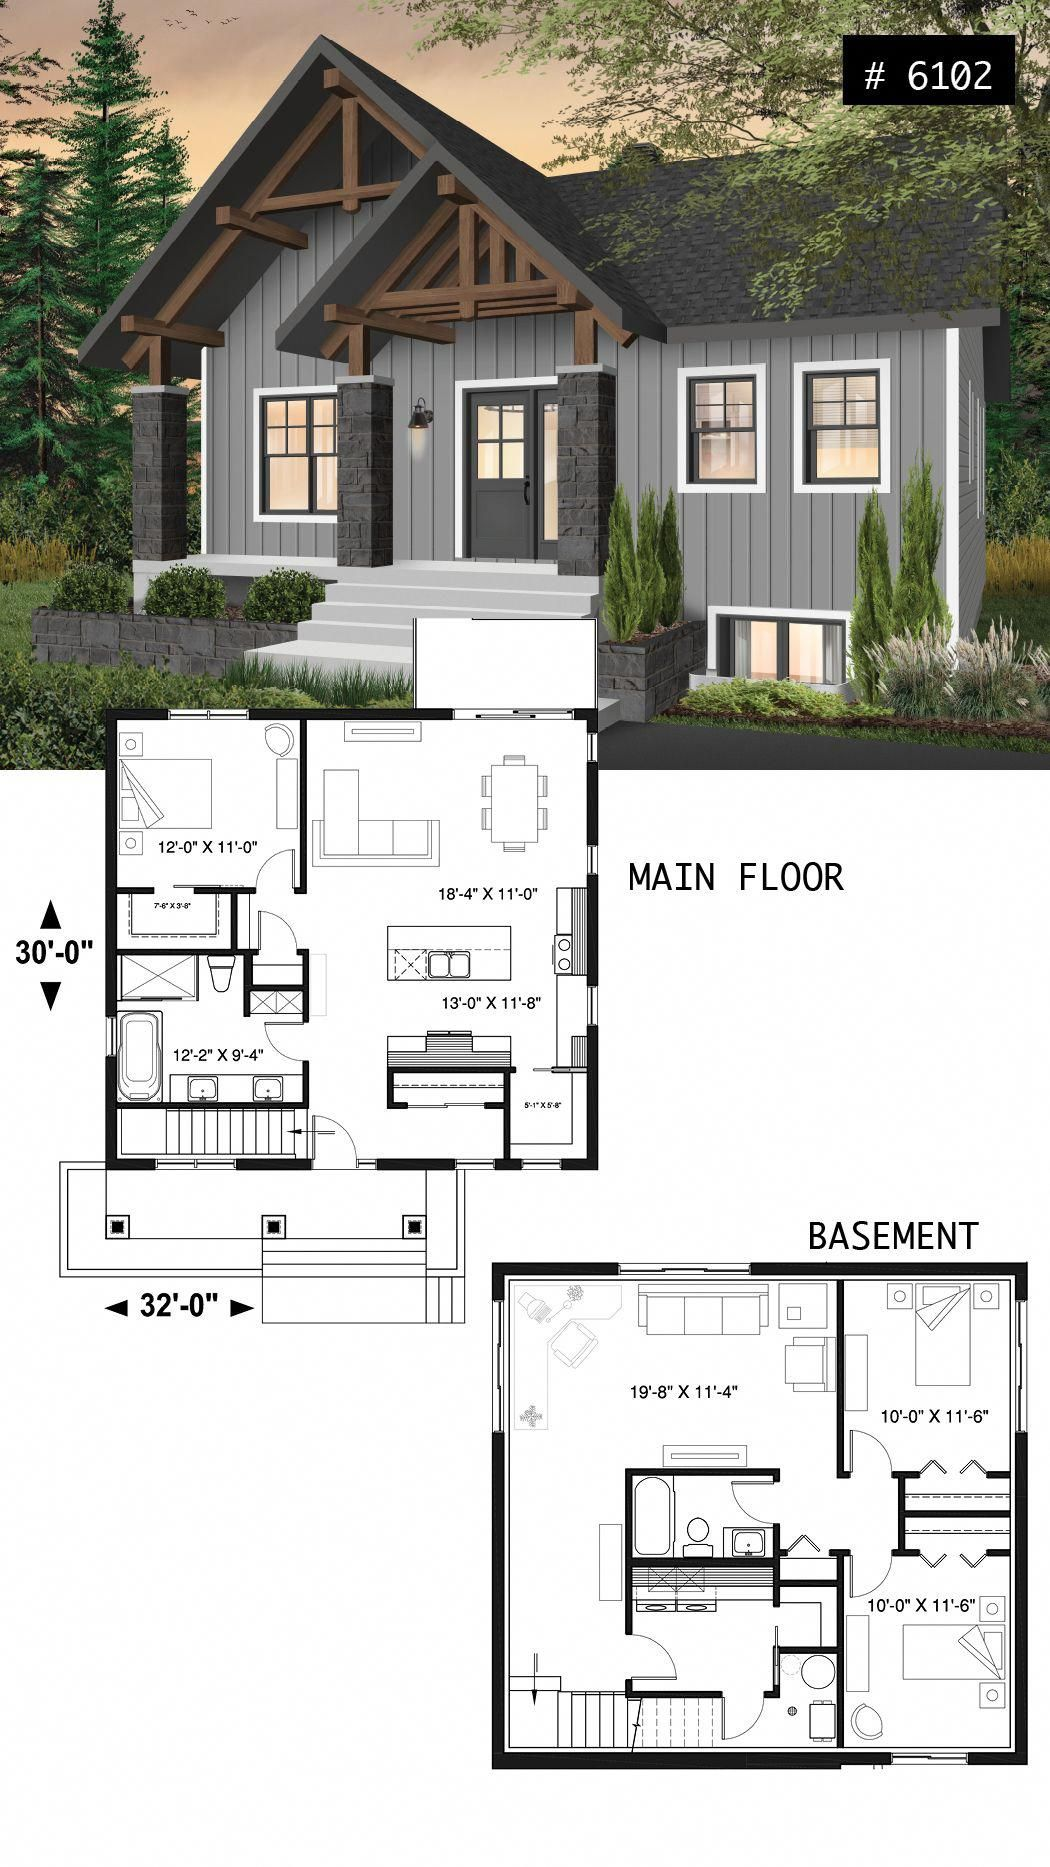 Beautiful Thing See Our Content Article For A Lot More Plans Greykitchens Craftsman House Plans House Plan With Loft Basement House Plans